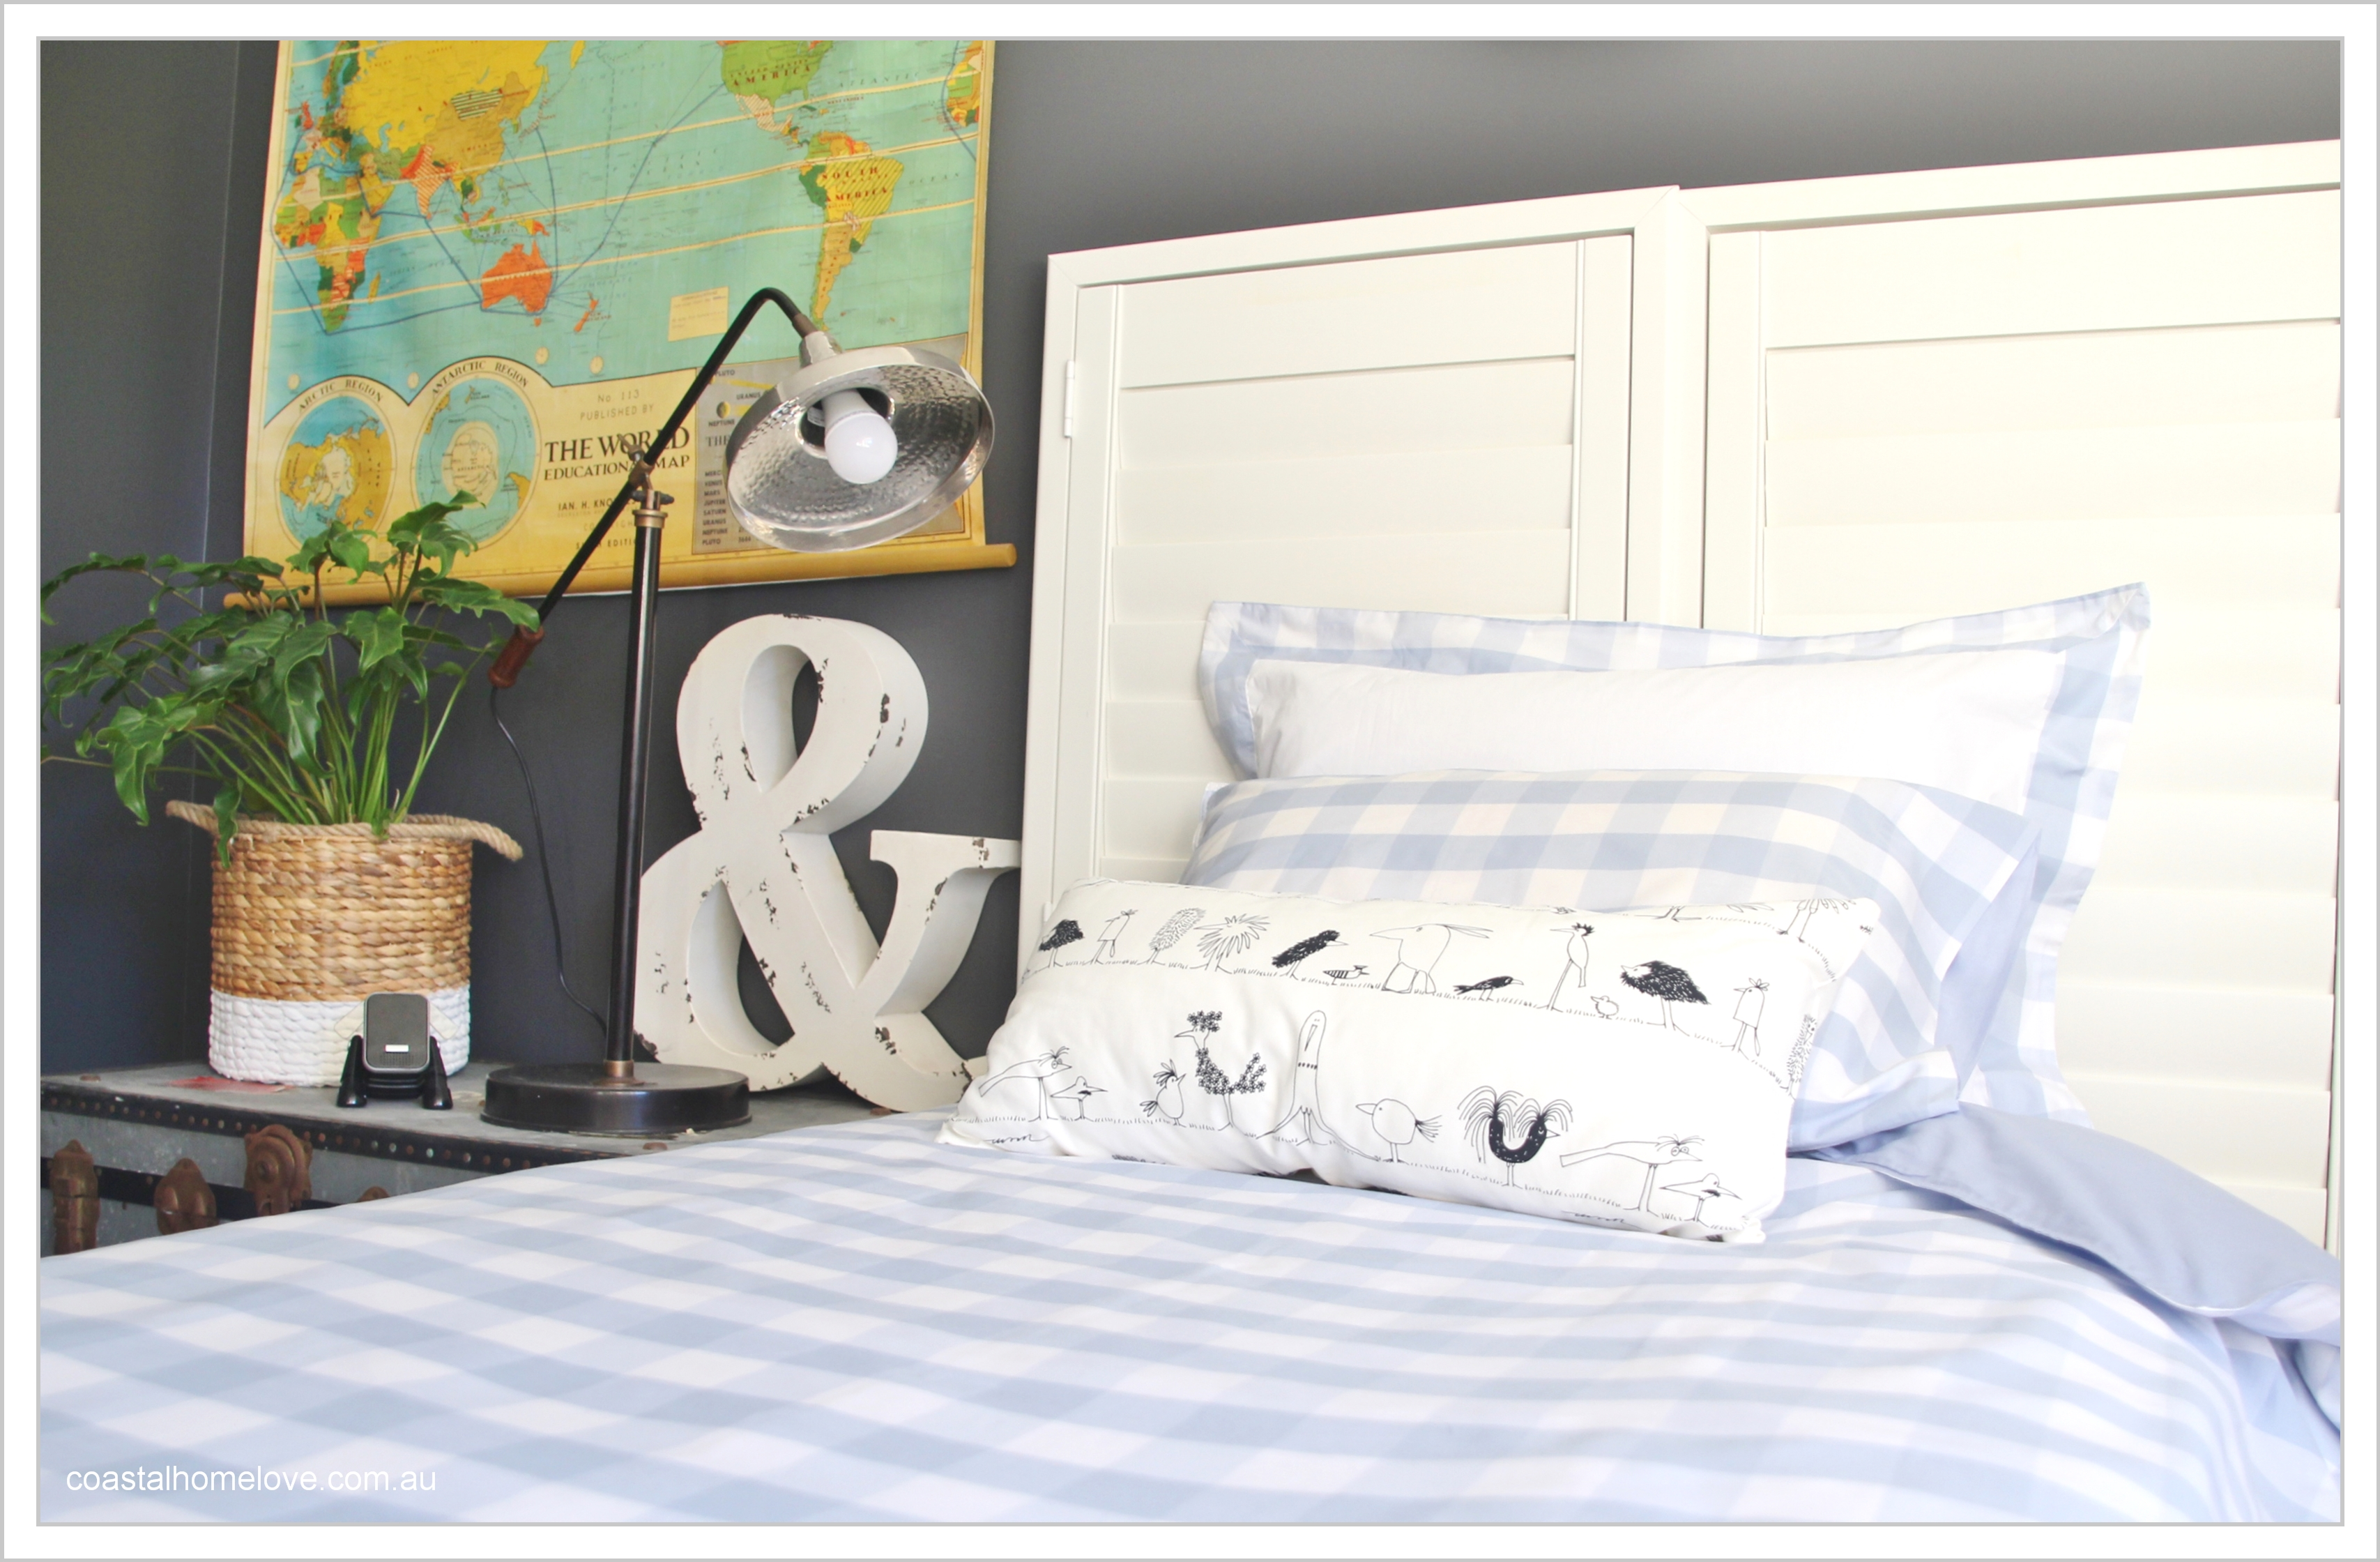 Styling coastal home love the vintage style world map is from typo basket is from big w chest was a vintage find lamp was from horgans the oar was another diy project gumiabroncs Choice Image